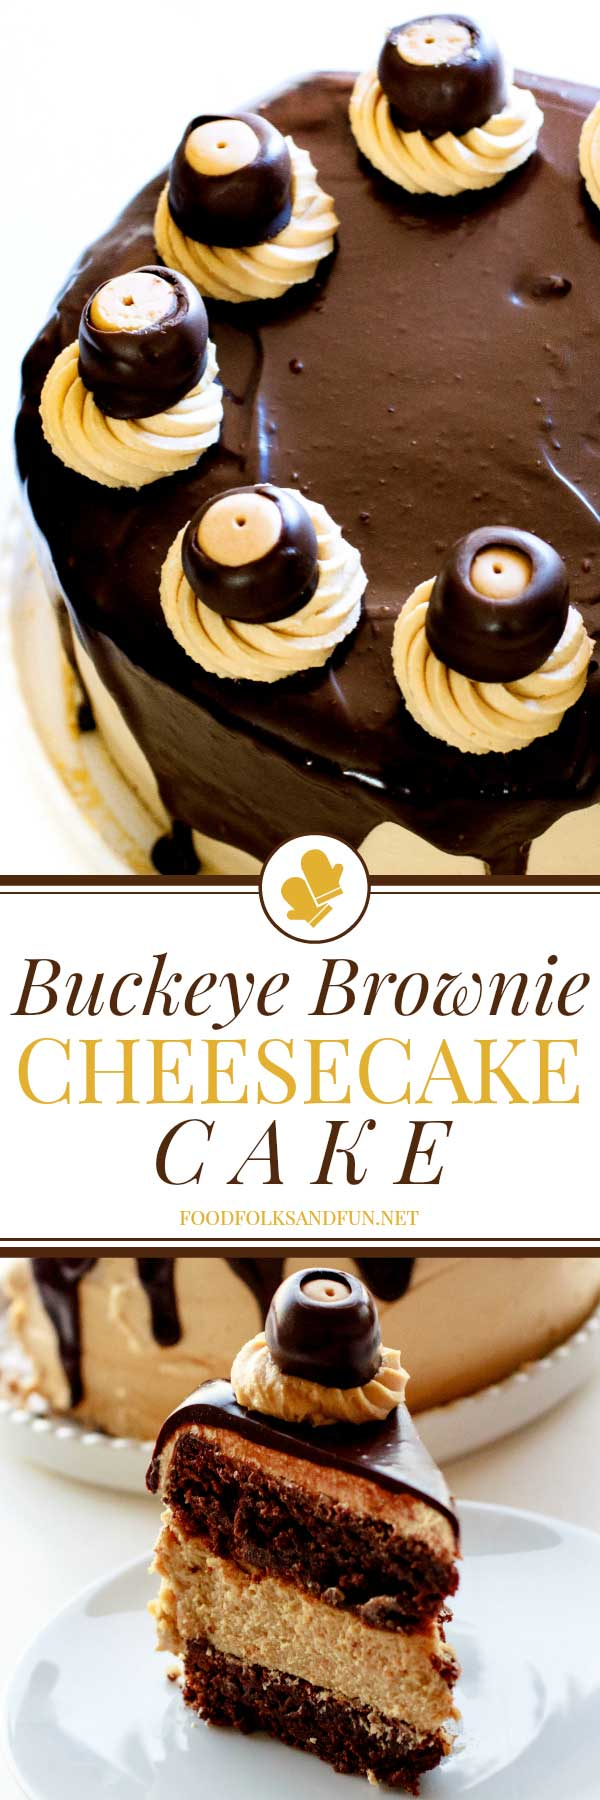 A collage of Buckeye Brownie Cheesecake Cake with text overlay for social media